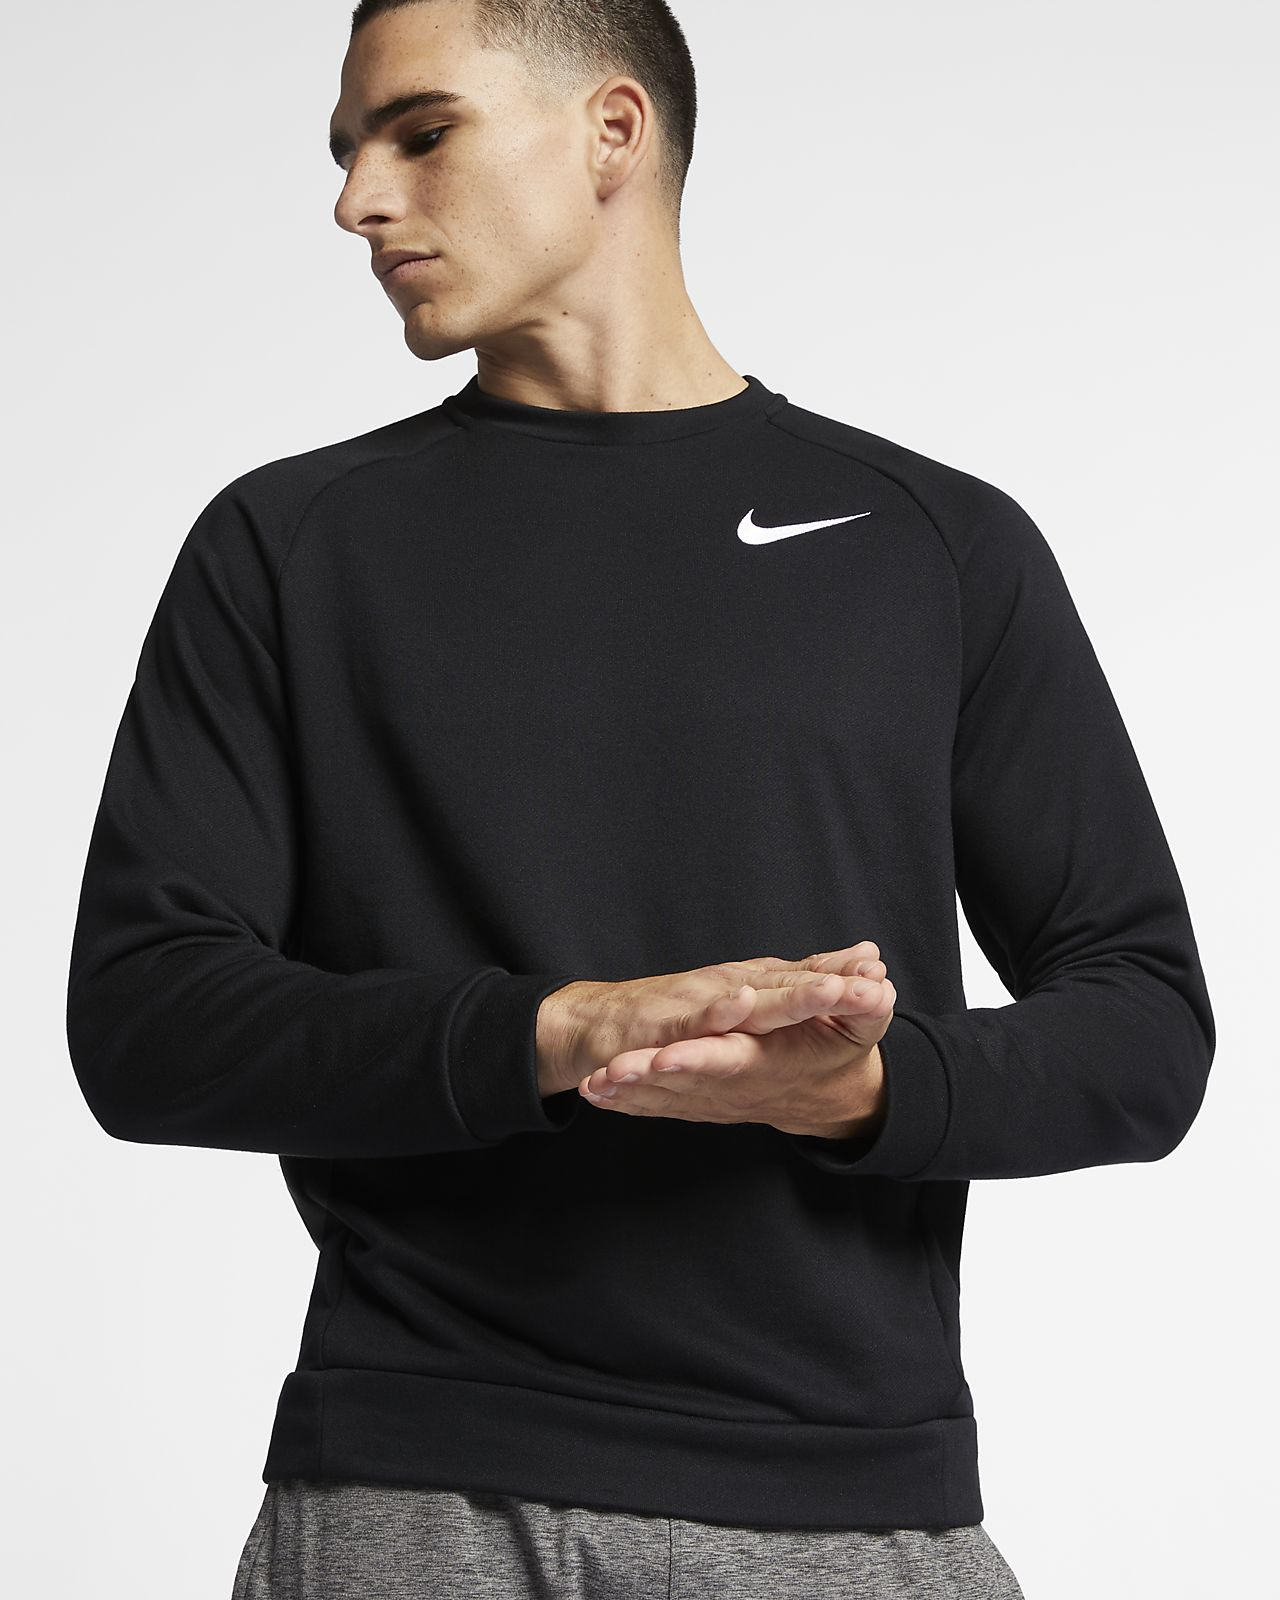 Nike Dri-FIT Trainingstop met fleece voor heren